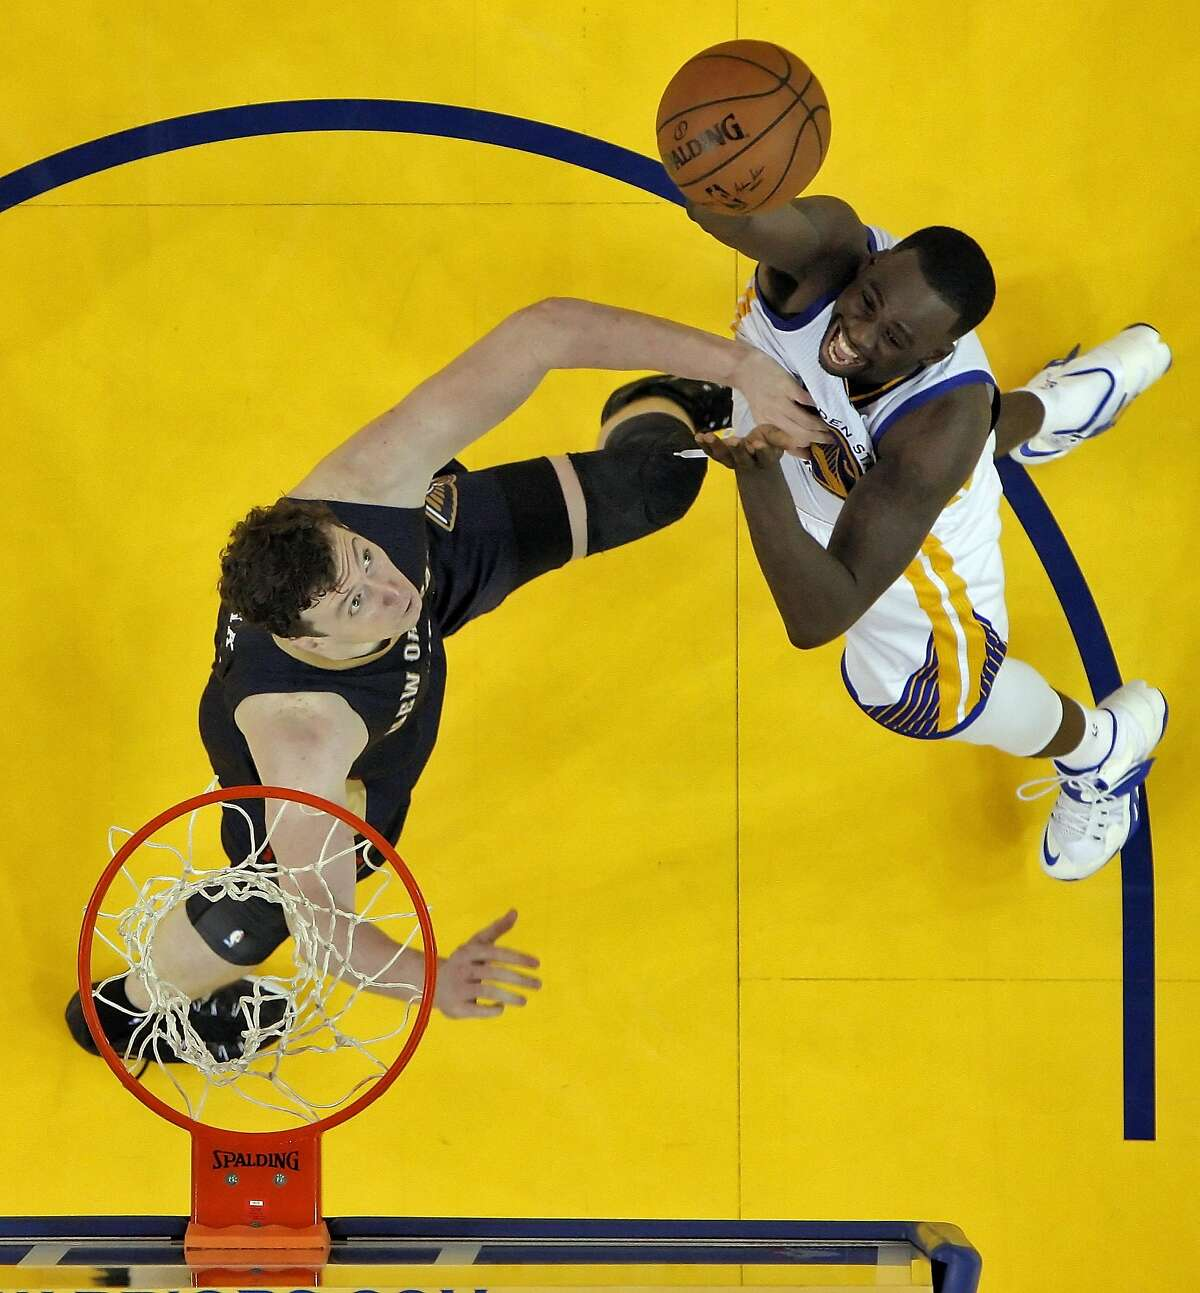 Draymond Green (23) shoots over Omer Asik (3) during the second half. The Golden State Warriors played the New Orleans Pelicans in Game 2 of the 1st Round of NBA Western Conference Playoffs at Oracle Arena in Oakland, Calif., on Monday, April 20, 2015.